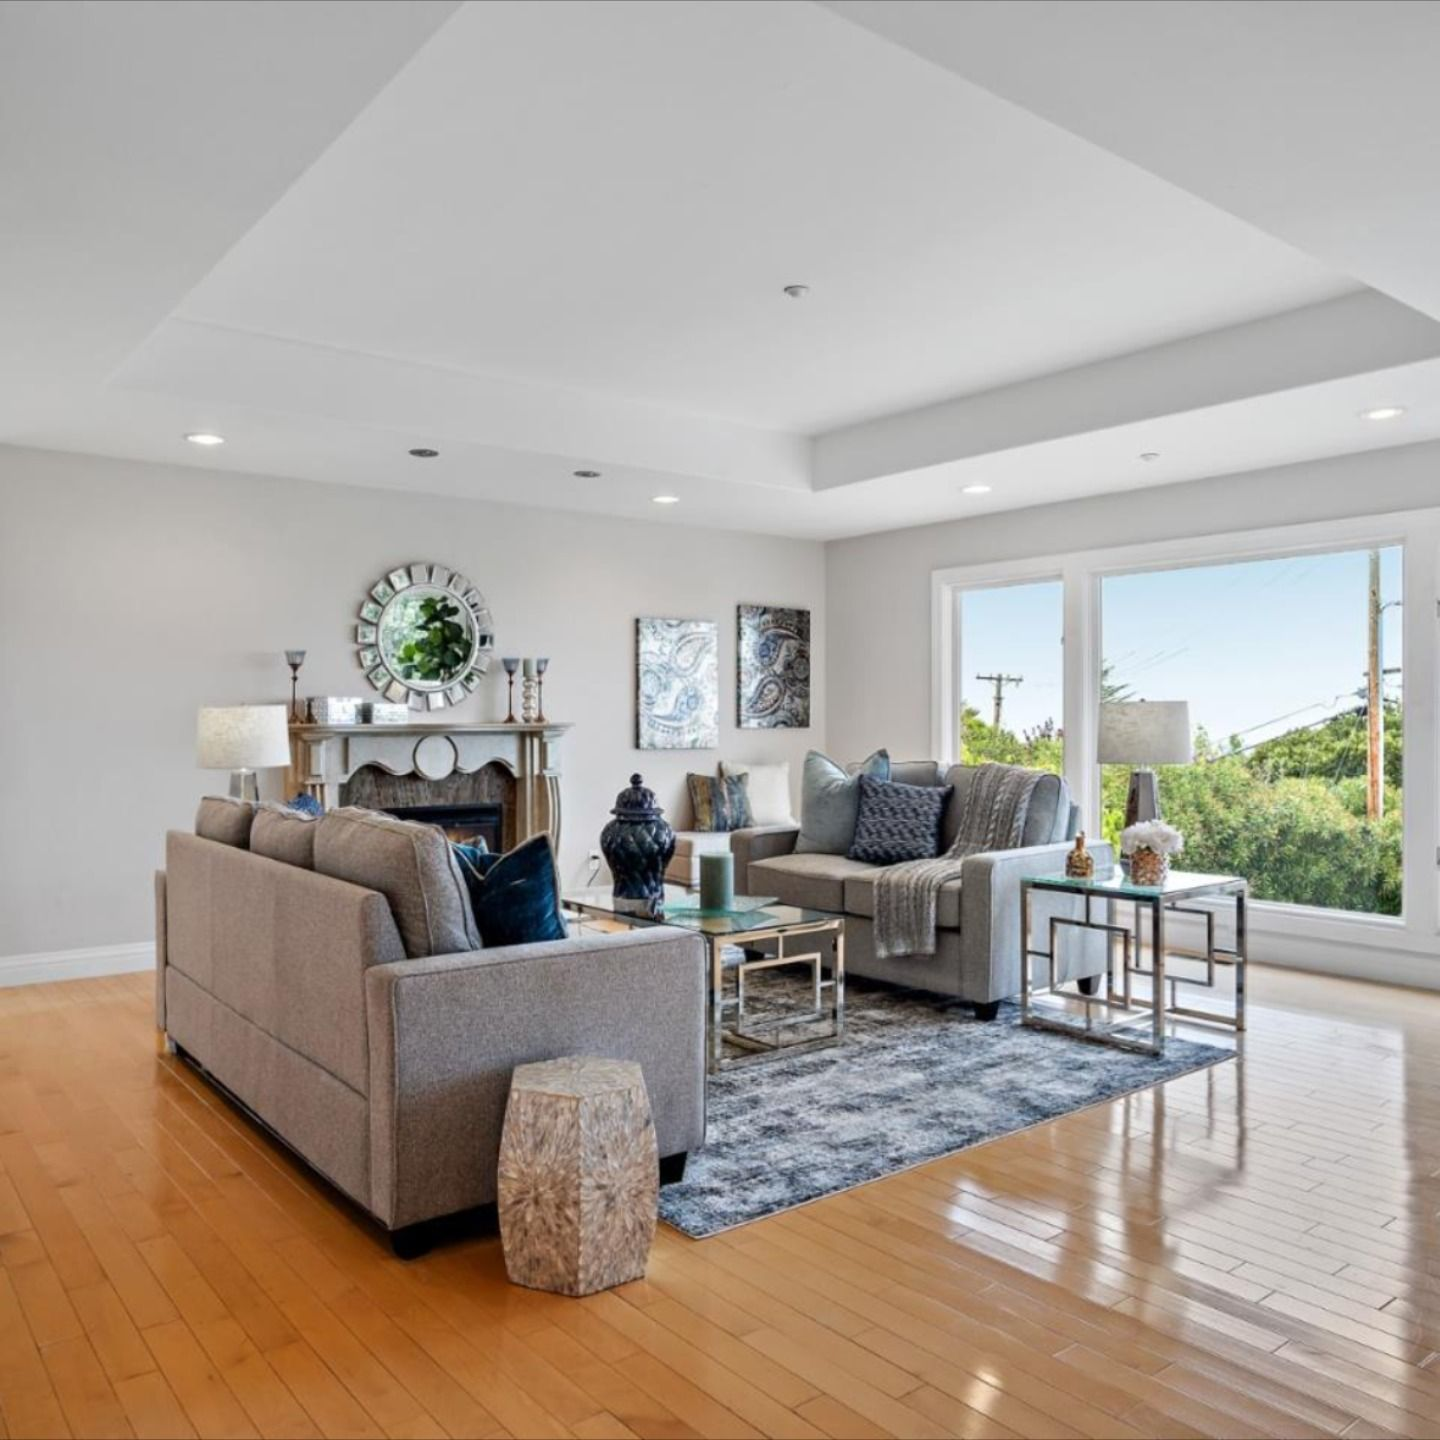 3828 Hamilton Way, Redwood City, CA 94062 | $3,349,00 5 Beds | 3.1 Baths | 3,772 Sq. Ft.  For questions or for private showing contact: Carolyn Botts Compass P: (650) 207-0246 E: carolynb@apr.com  #homeforsaleinRedwoodCity #homesforsale #RedwoodCityHomes #houseforsale #forsale #realtor #compass #realestate #realestateagent #realestatemarket #homes #findhome #beautifulhome #homebuyers #housingmarket #siliconvalleyhomes #siliconvalley #carolynbotts #carolynbottsrealtor